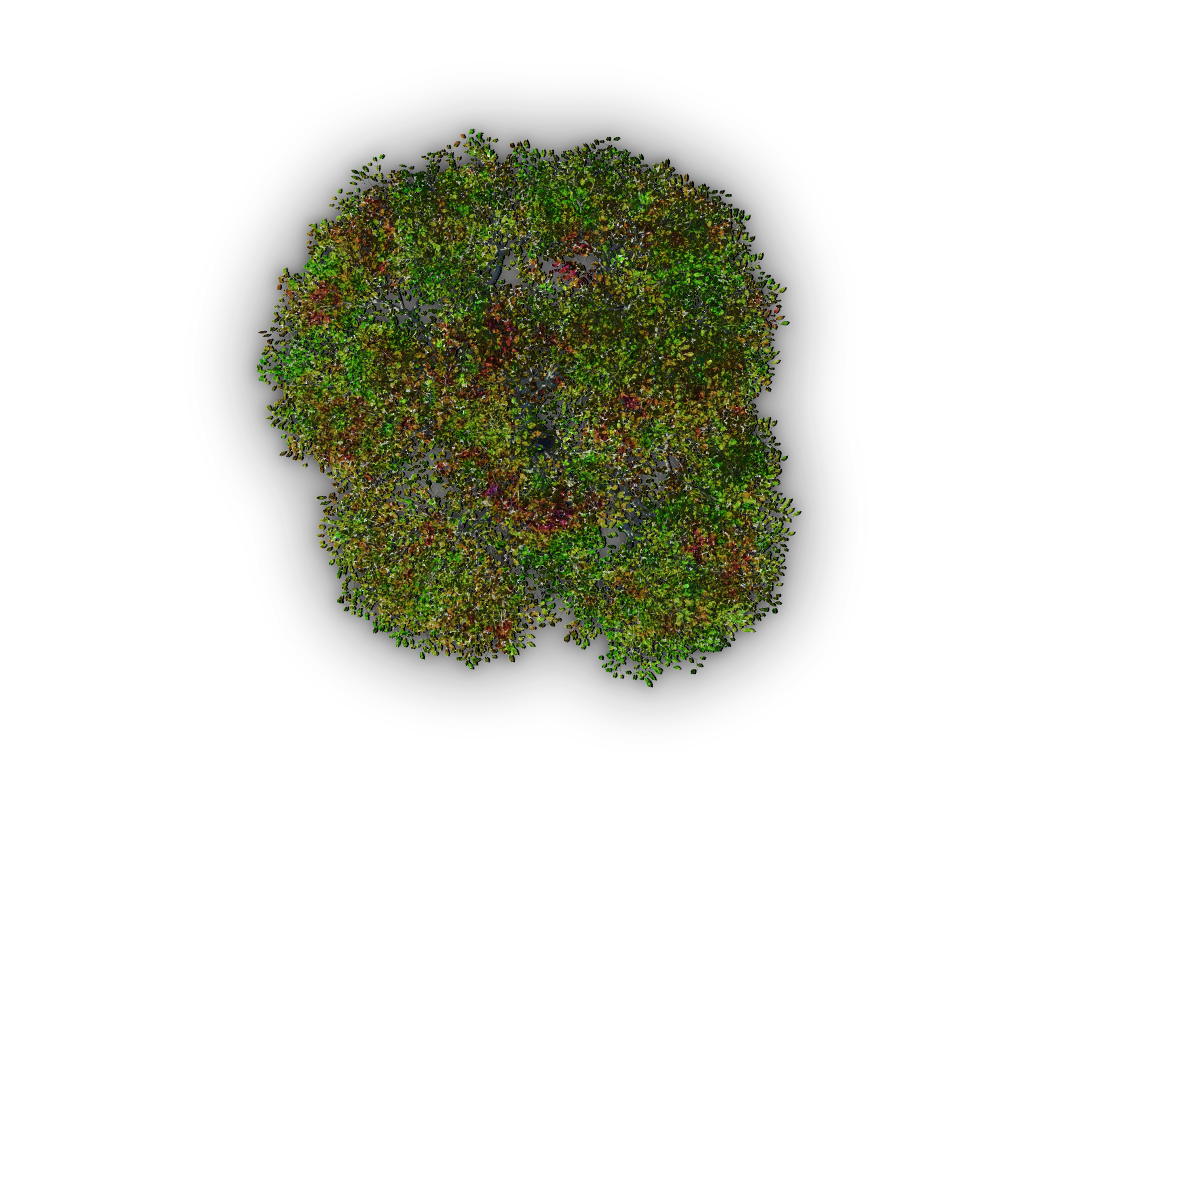 Index of /Mapping/Terrain/Plants/Trees